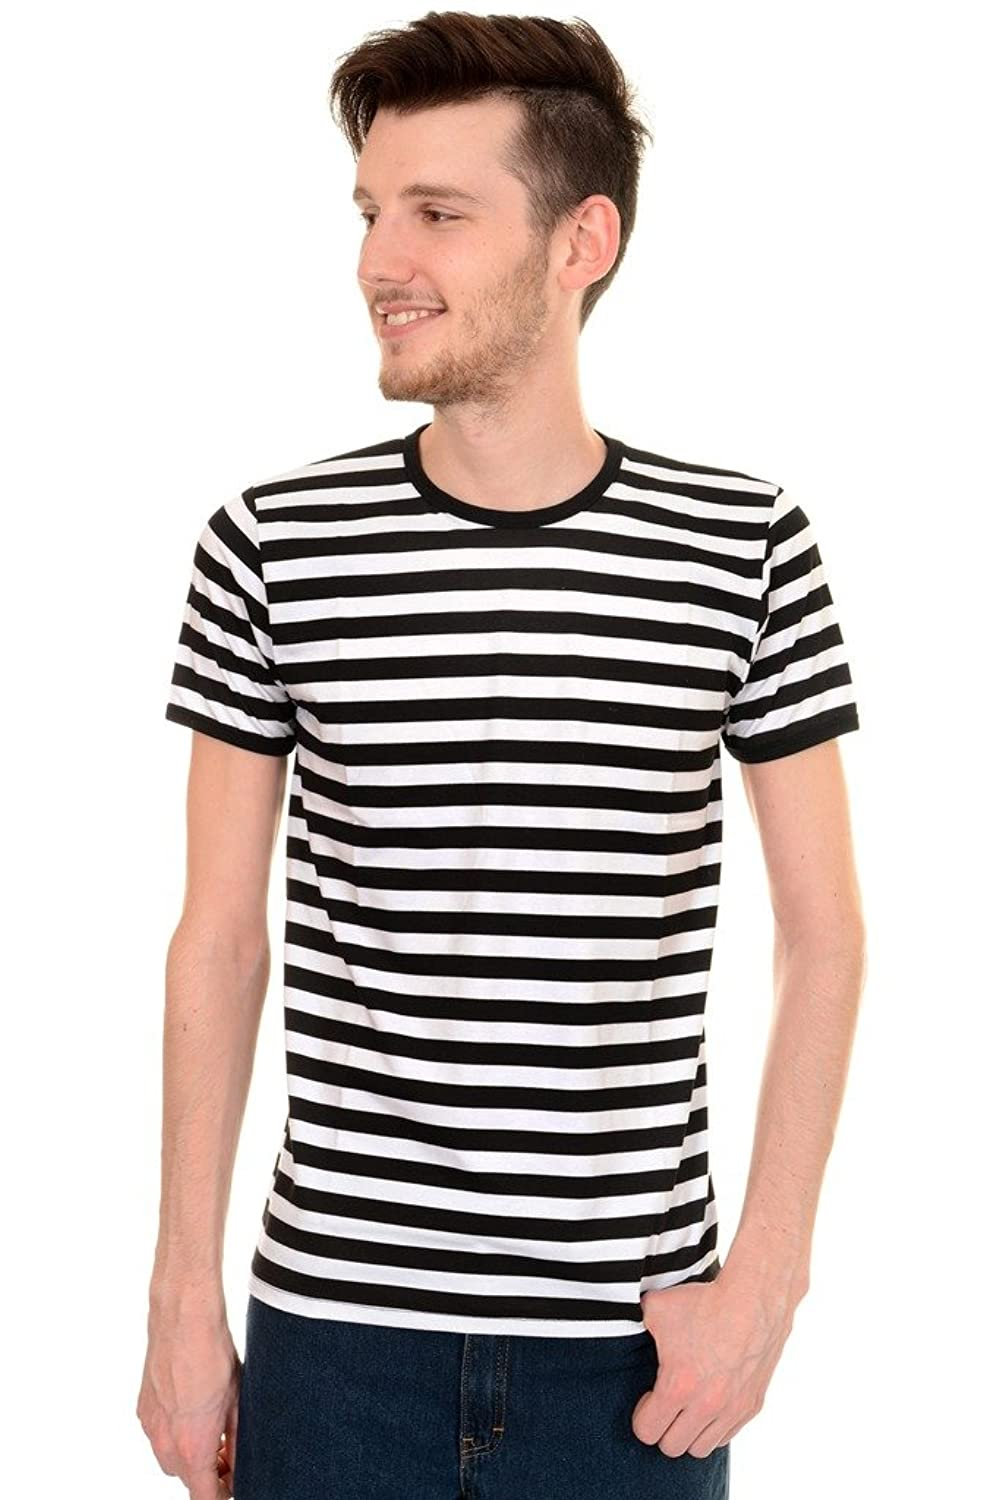 1920s Men's Dress Shirts Mens Indie Retro 60s Black & White Striped Short Sleeve T Shirt $19.95 AT vintagedancer.com